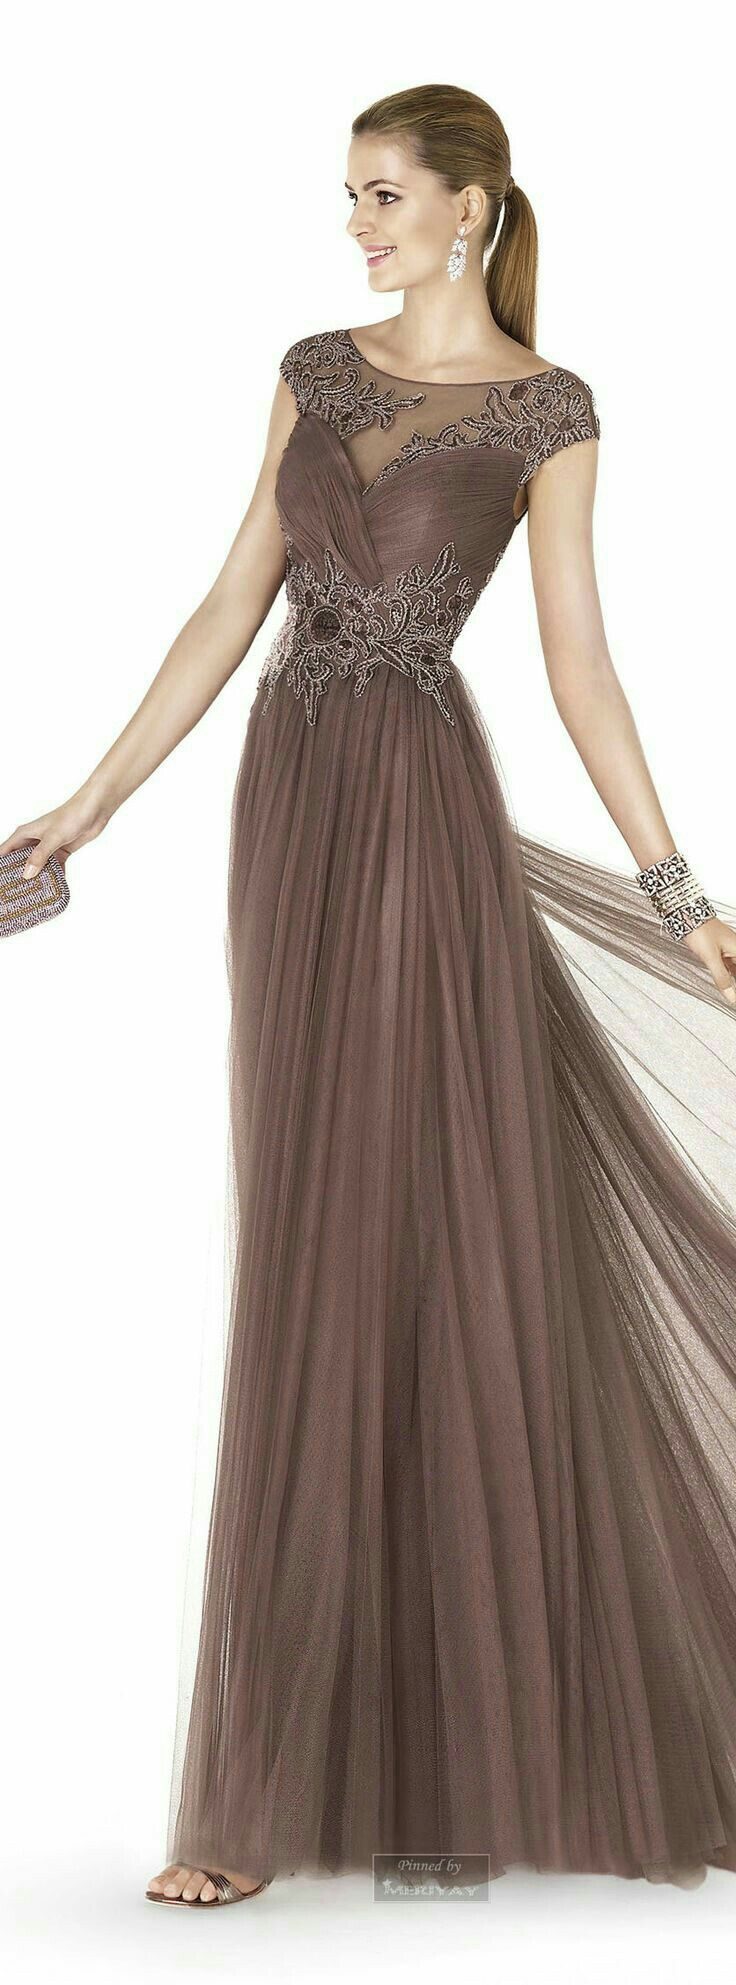 best images about kleider on pinterest yellow lace blush pink